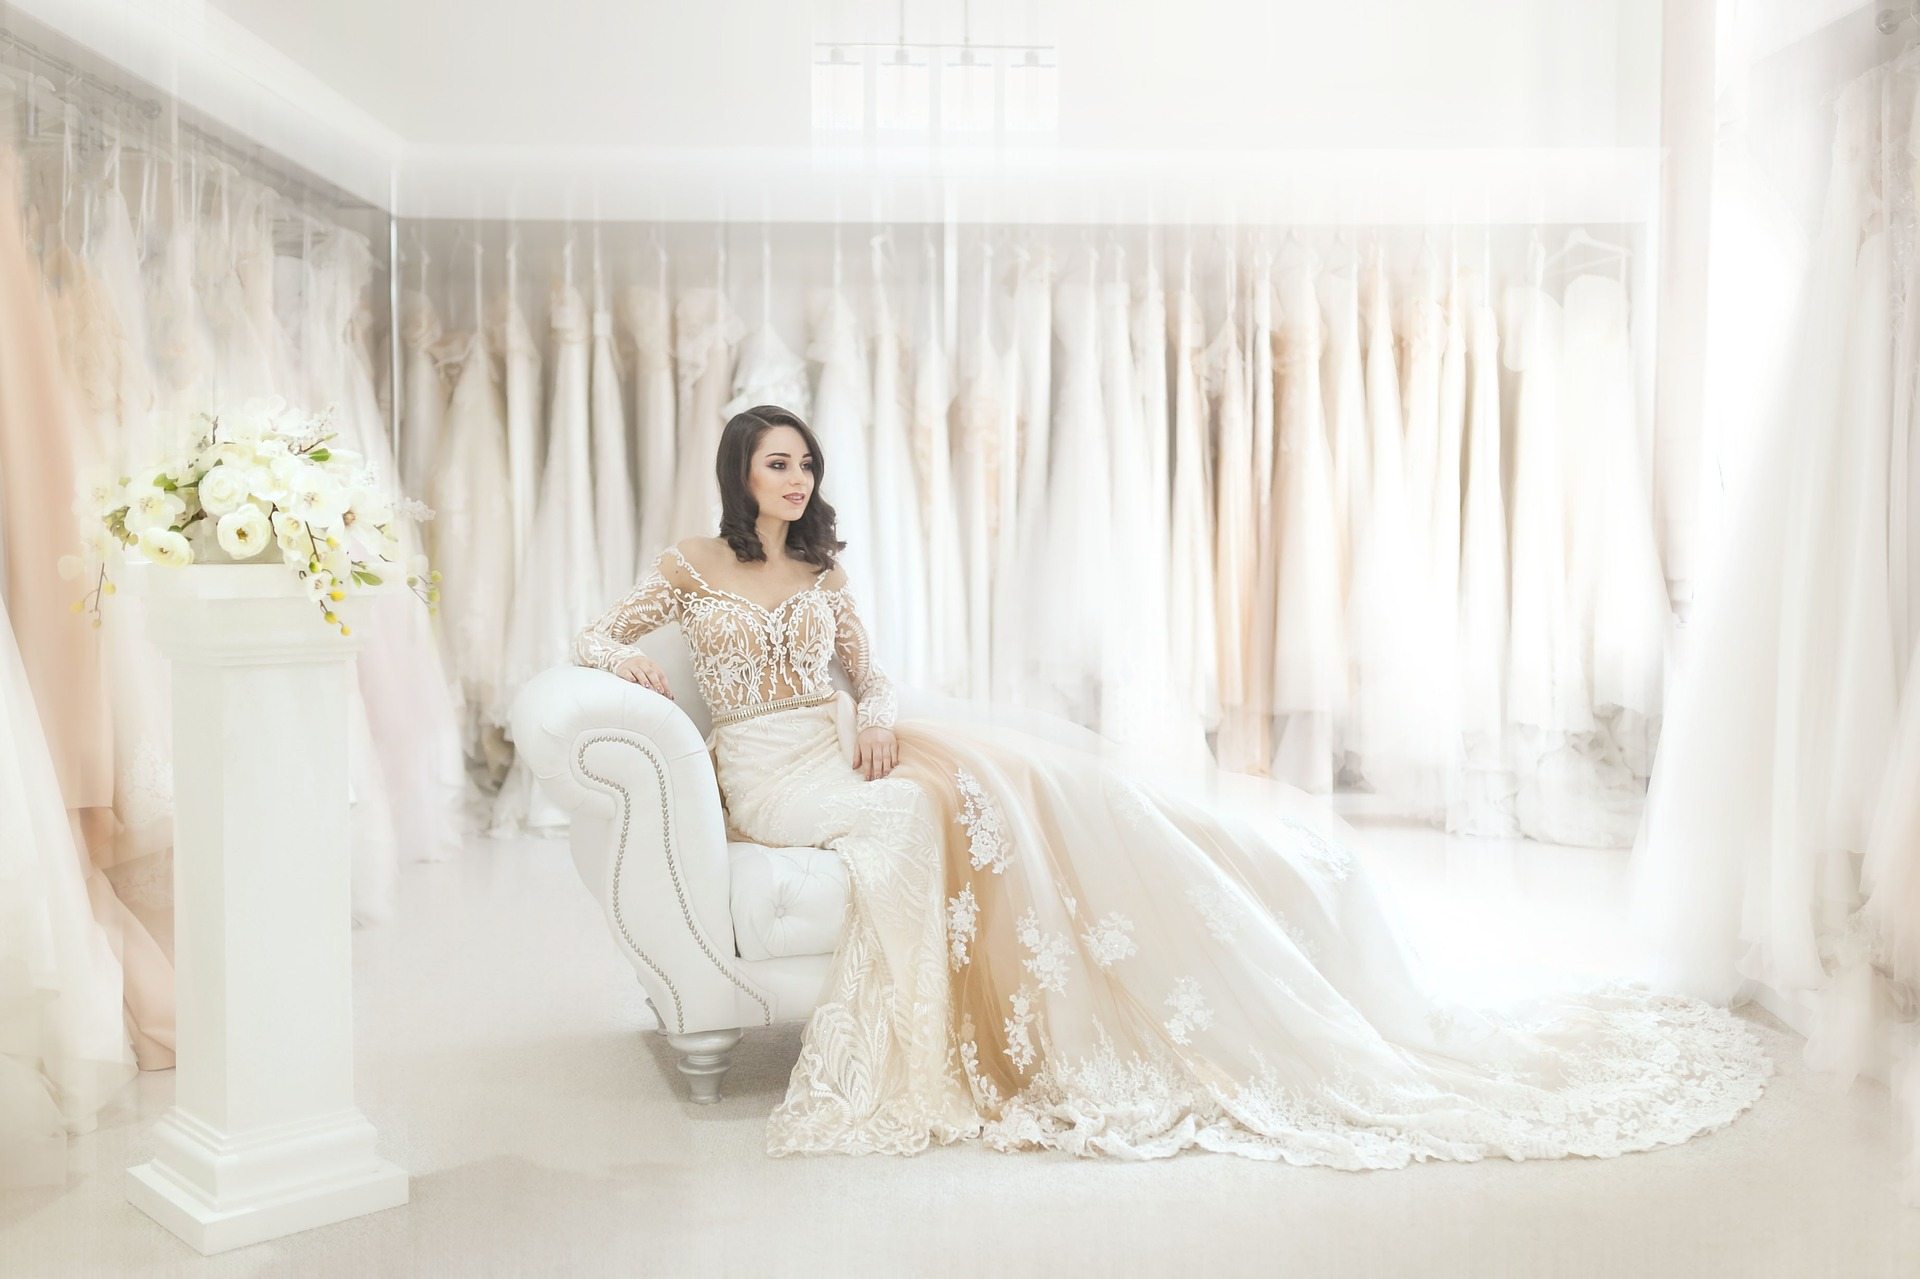 Process of hiring wedding gowns